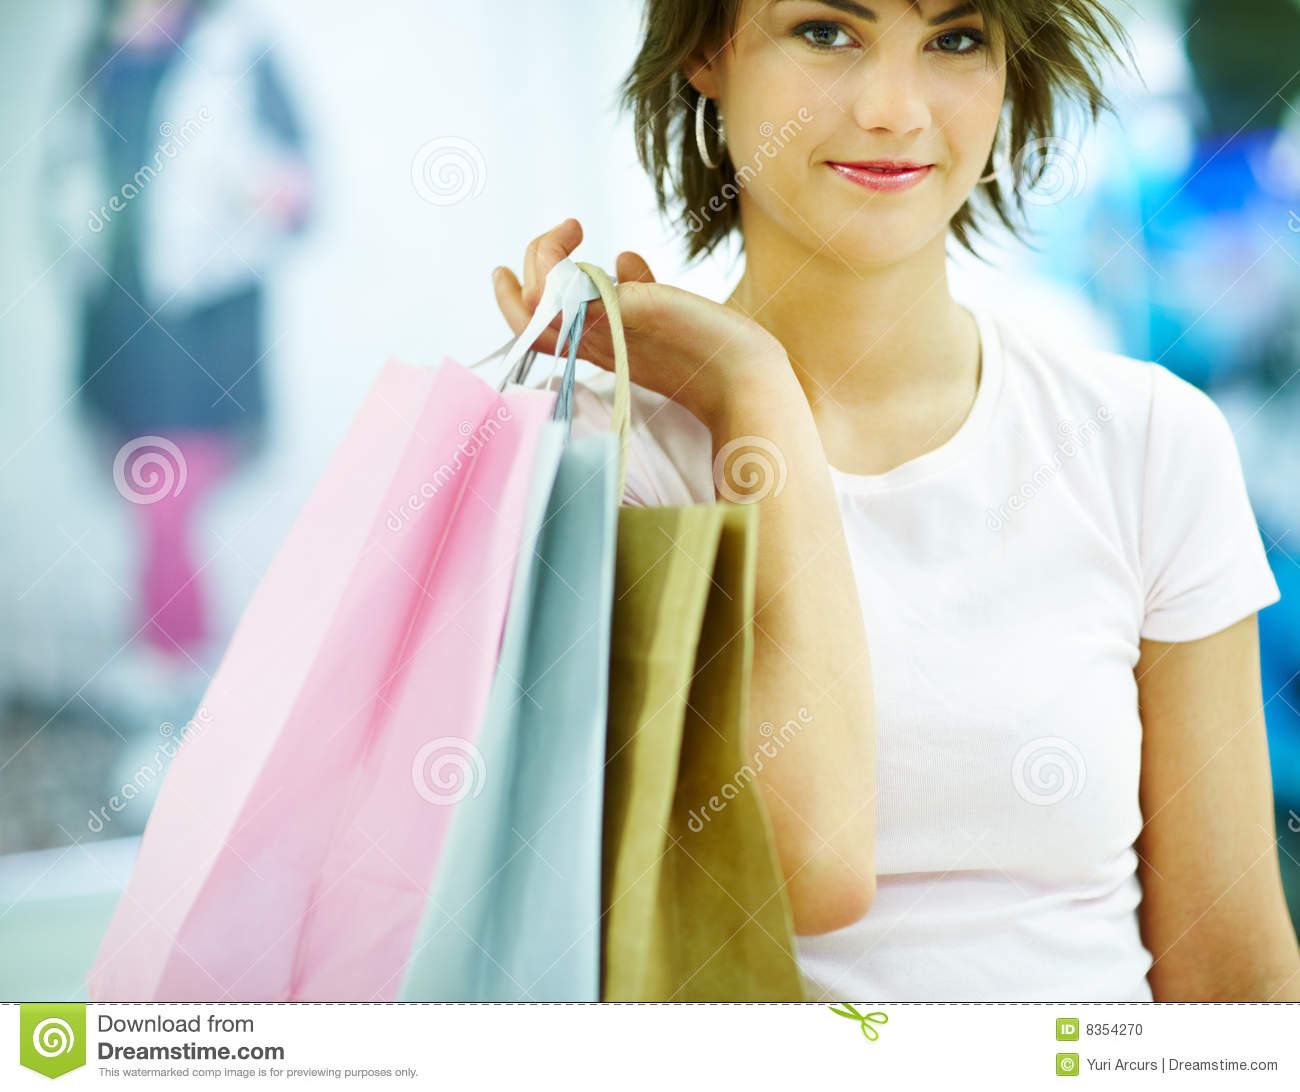 Beautiful Attractive Asian Woman Holding Shopping Bags Stock Photo - Image 33367596